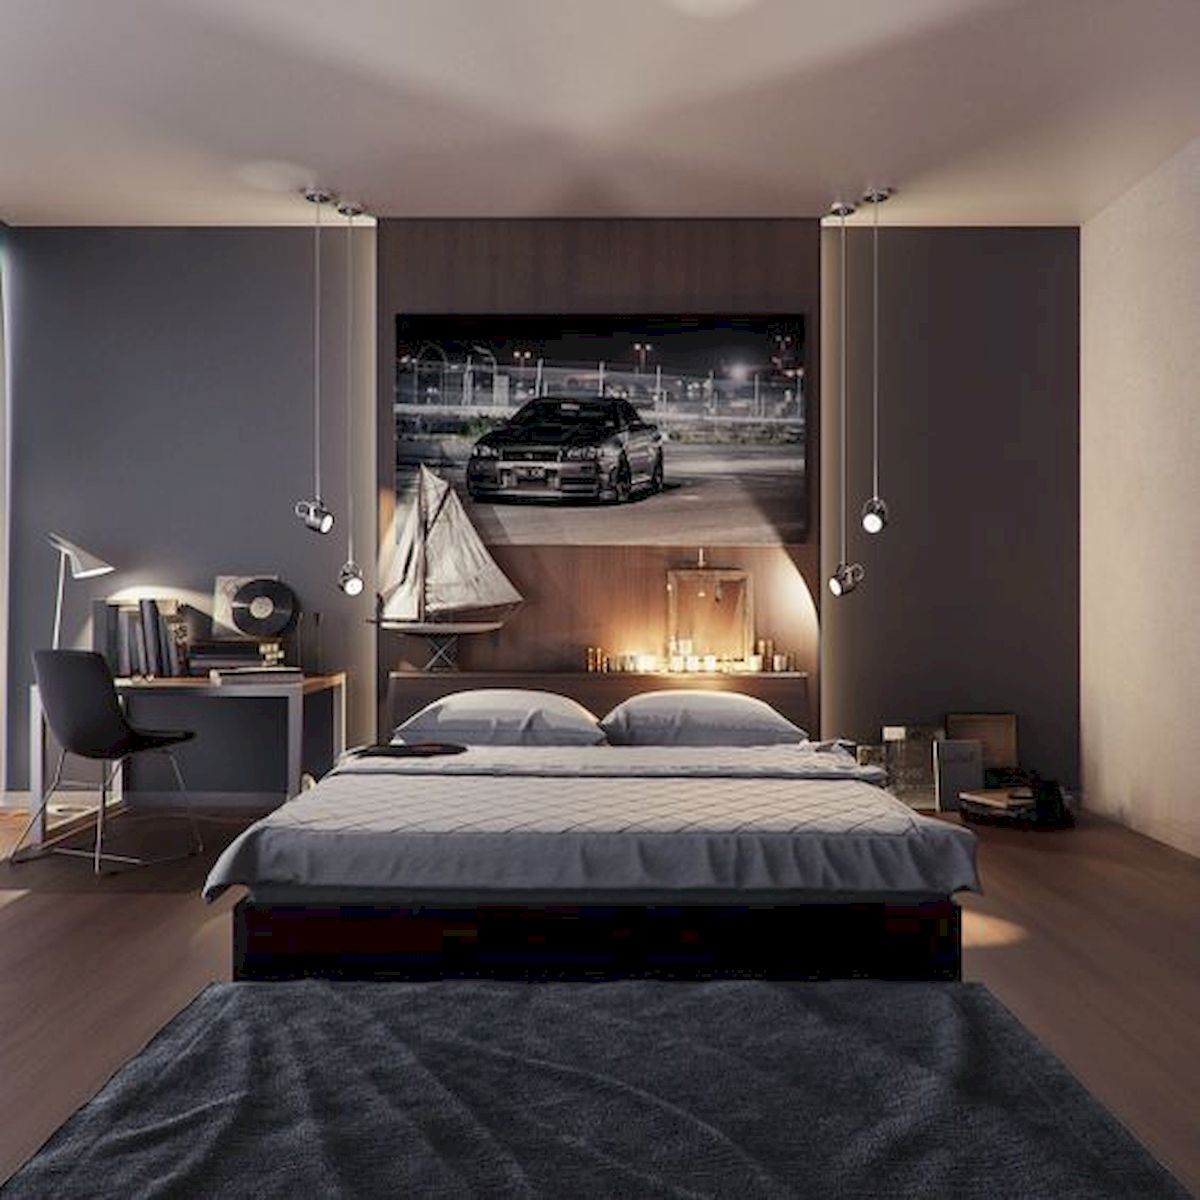 45 Cool Boys Bedroom Ideas to Try at Home (41)